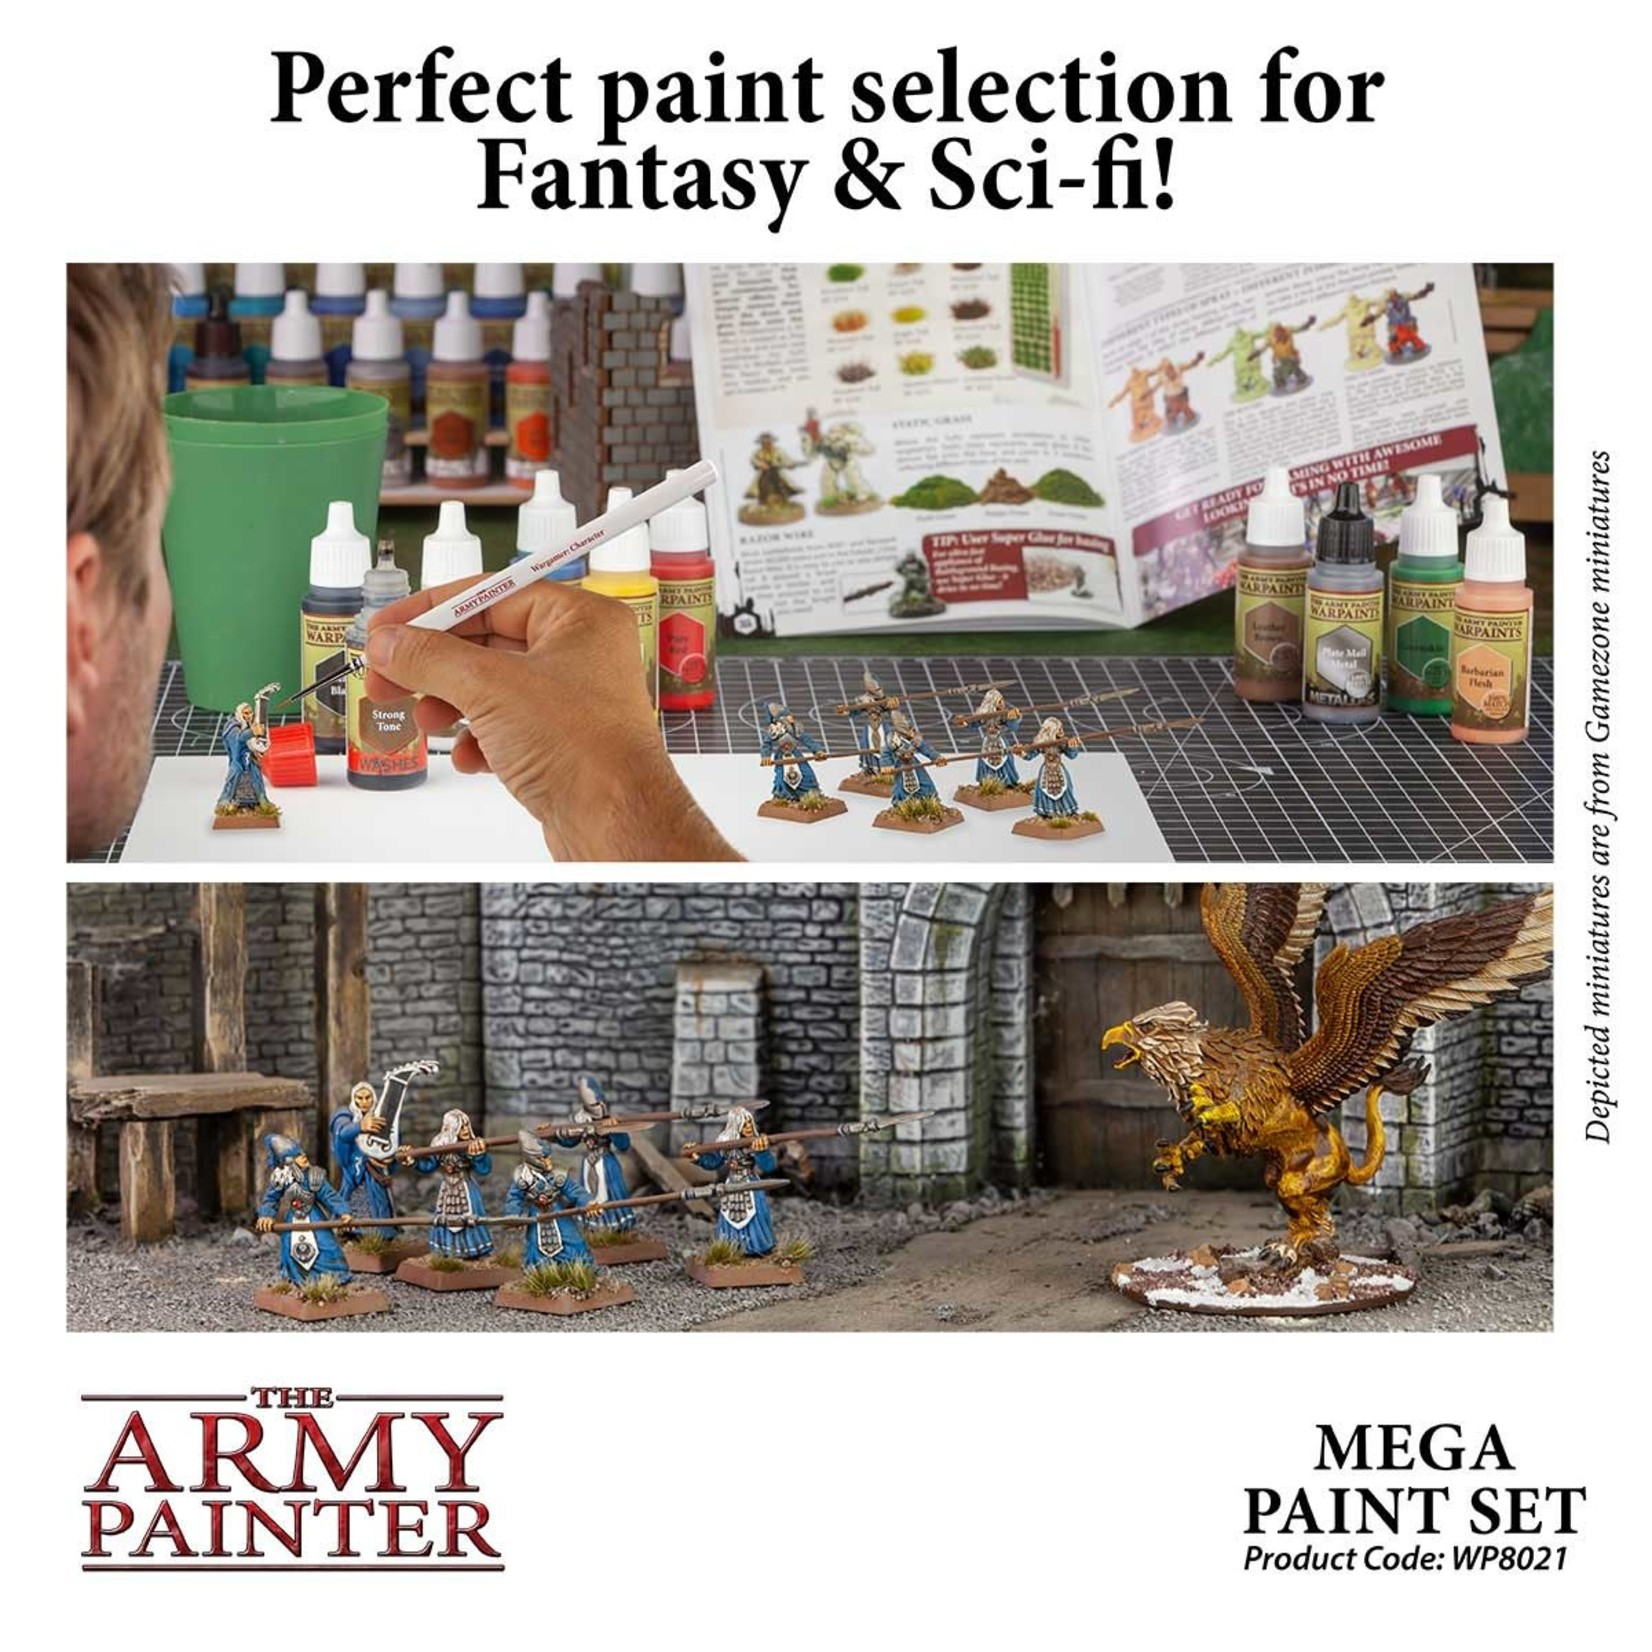 The Army Painter The Army Painter: Megapaint Set